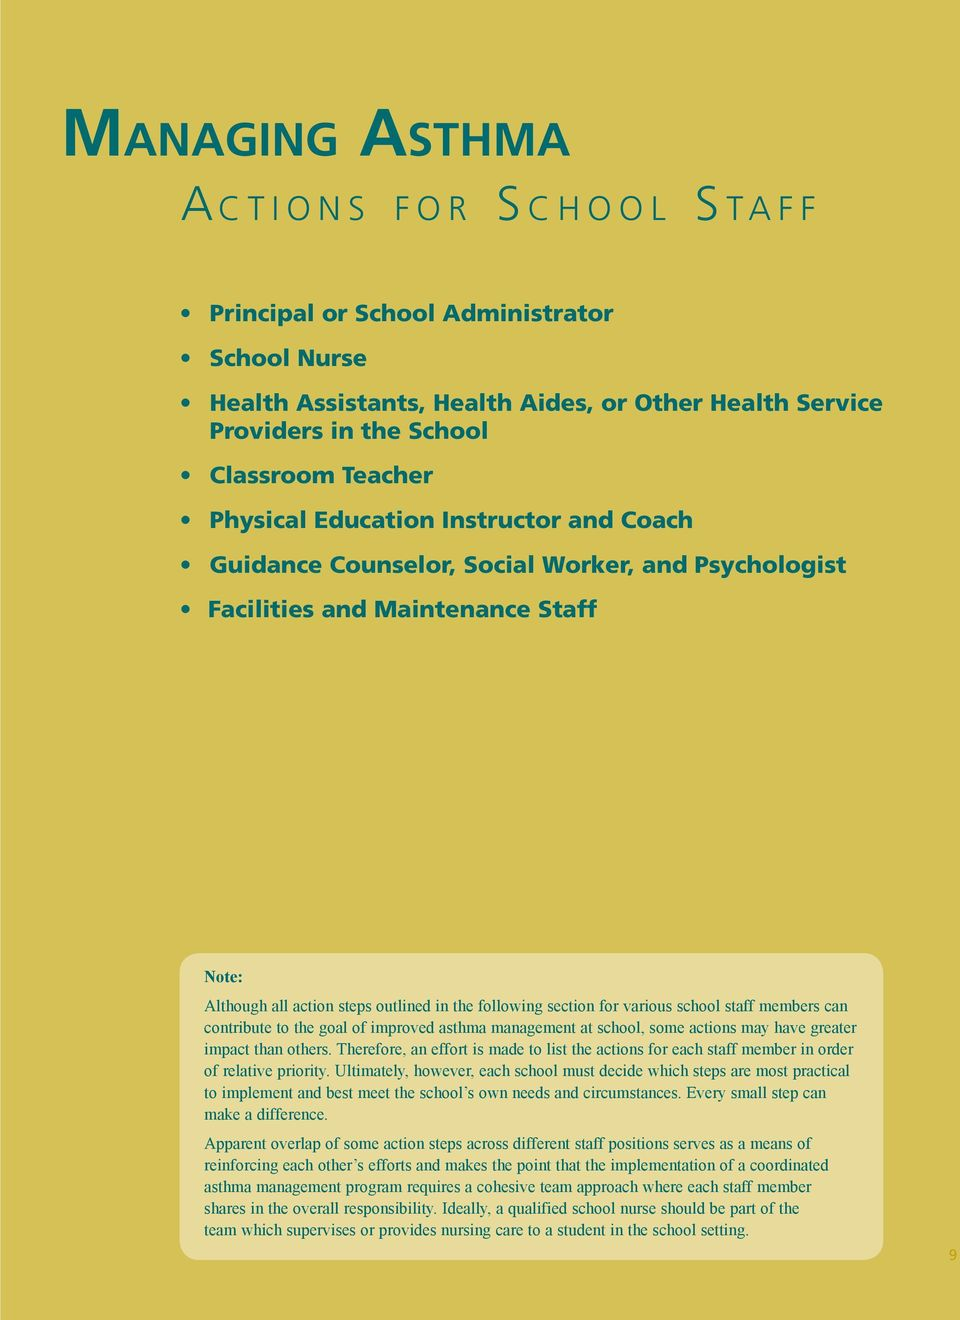 for various school staff members can contribute to the goal of improved asthma management at school, some actions may have greater impact than others.